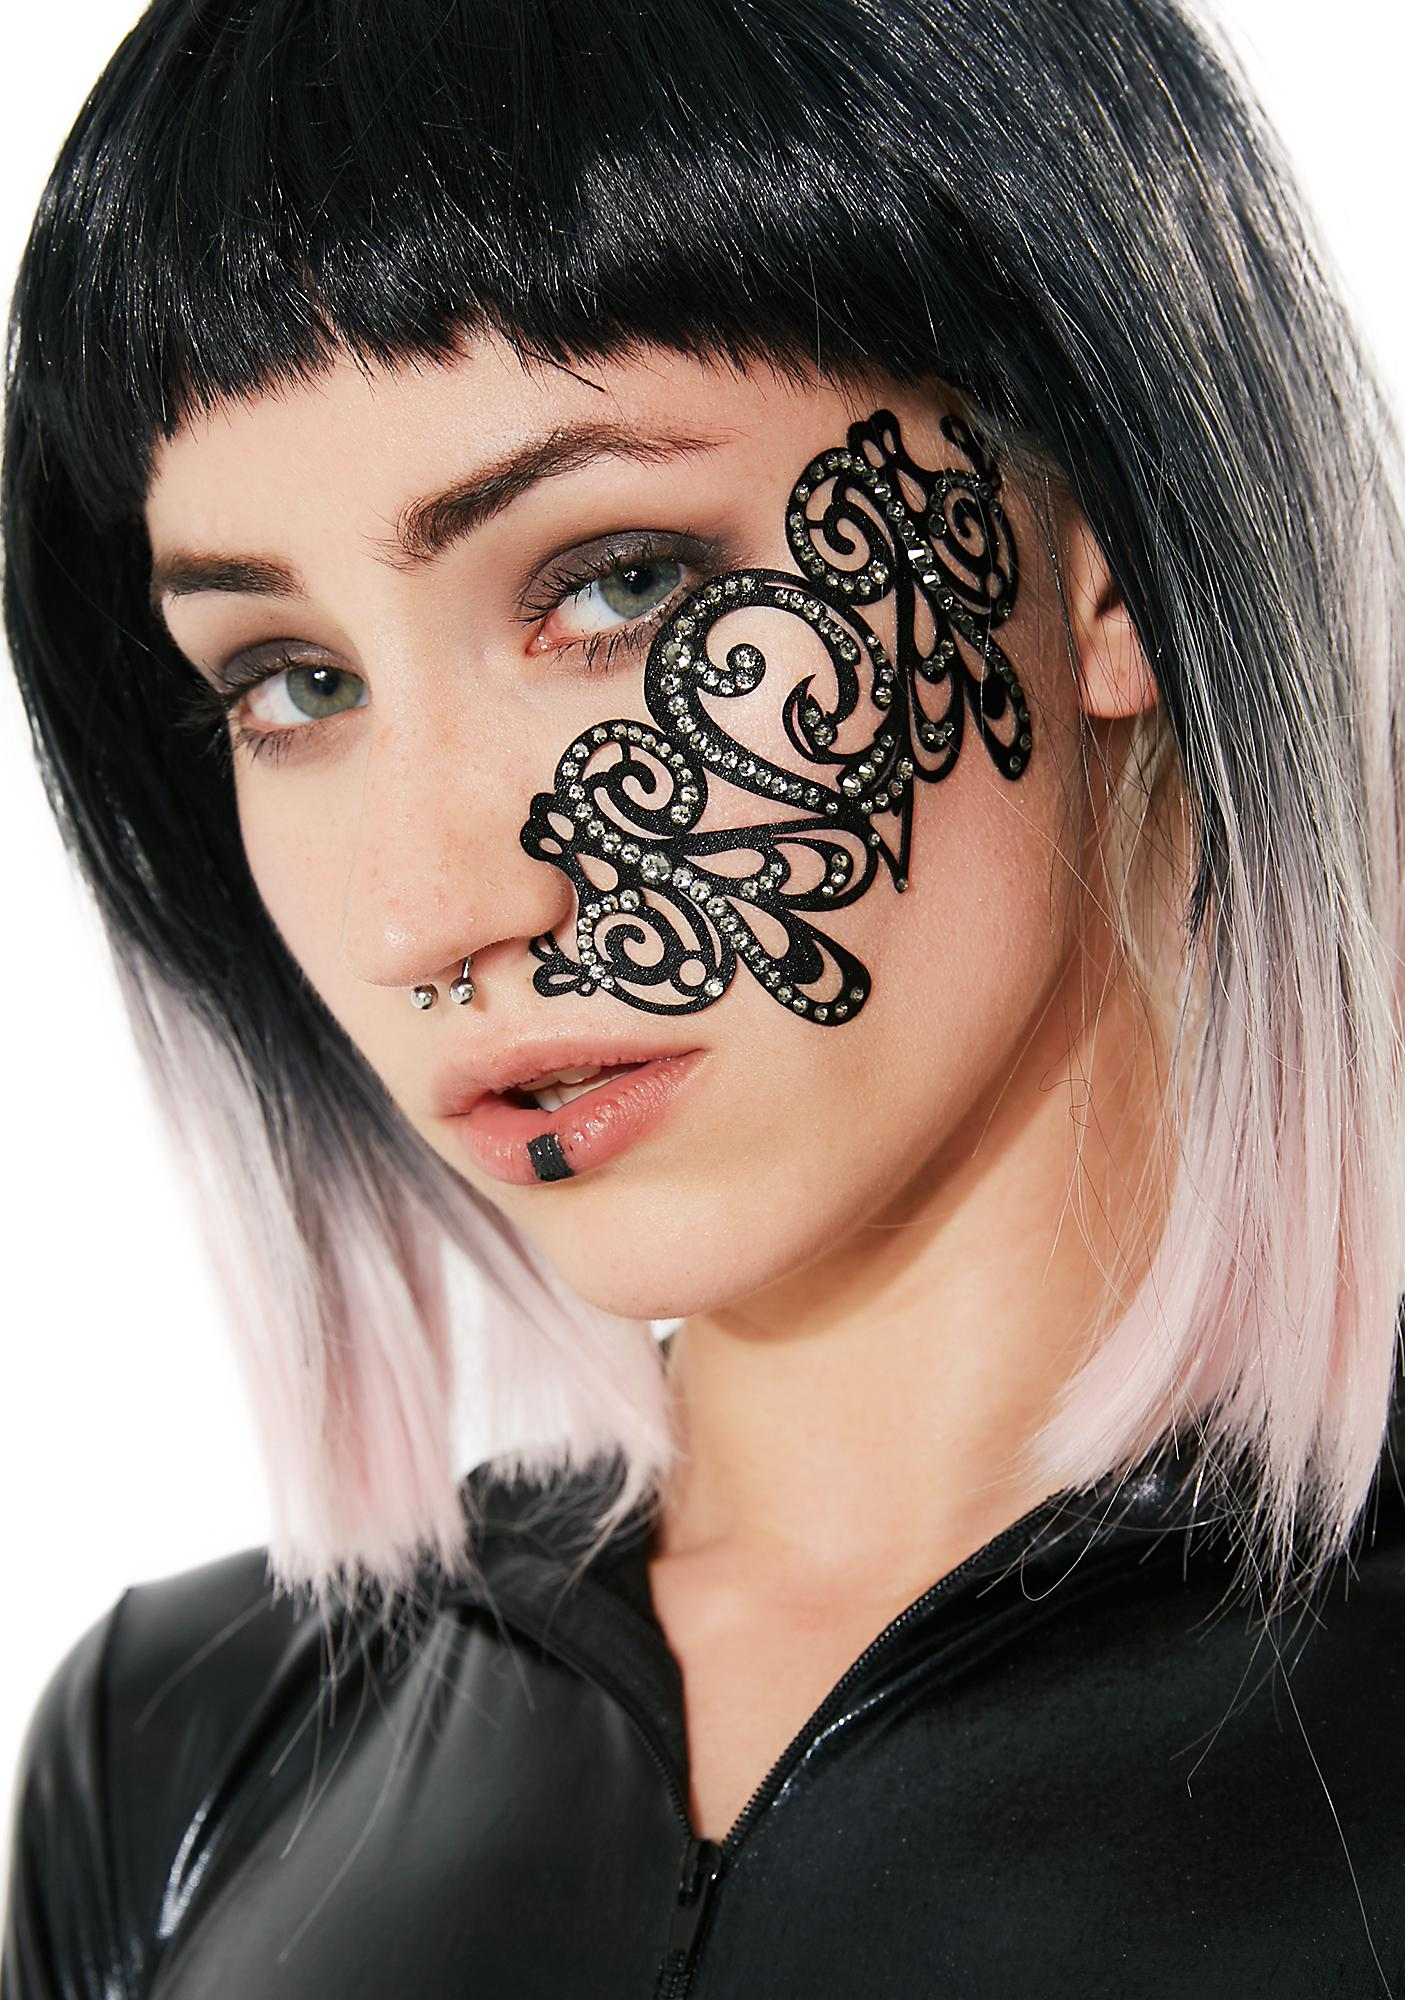 Black Lace Skin Jewelry Stash Body Jewelry